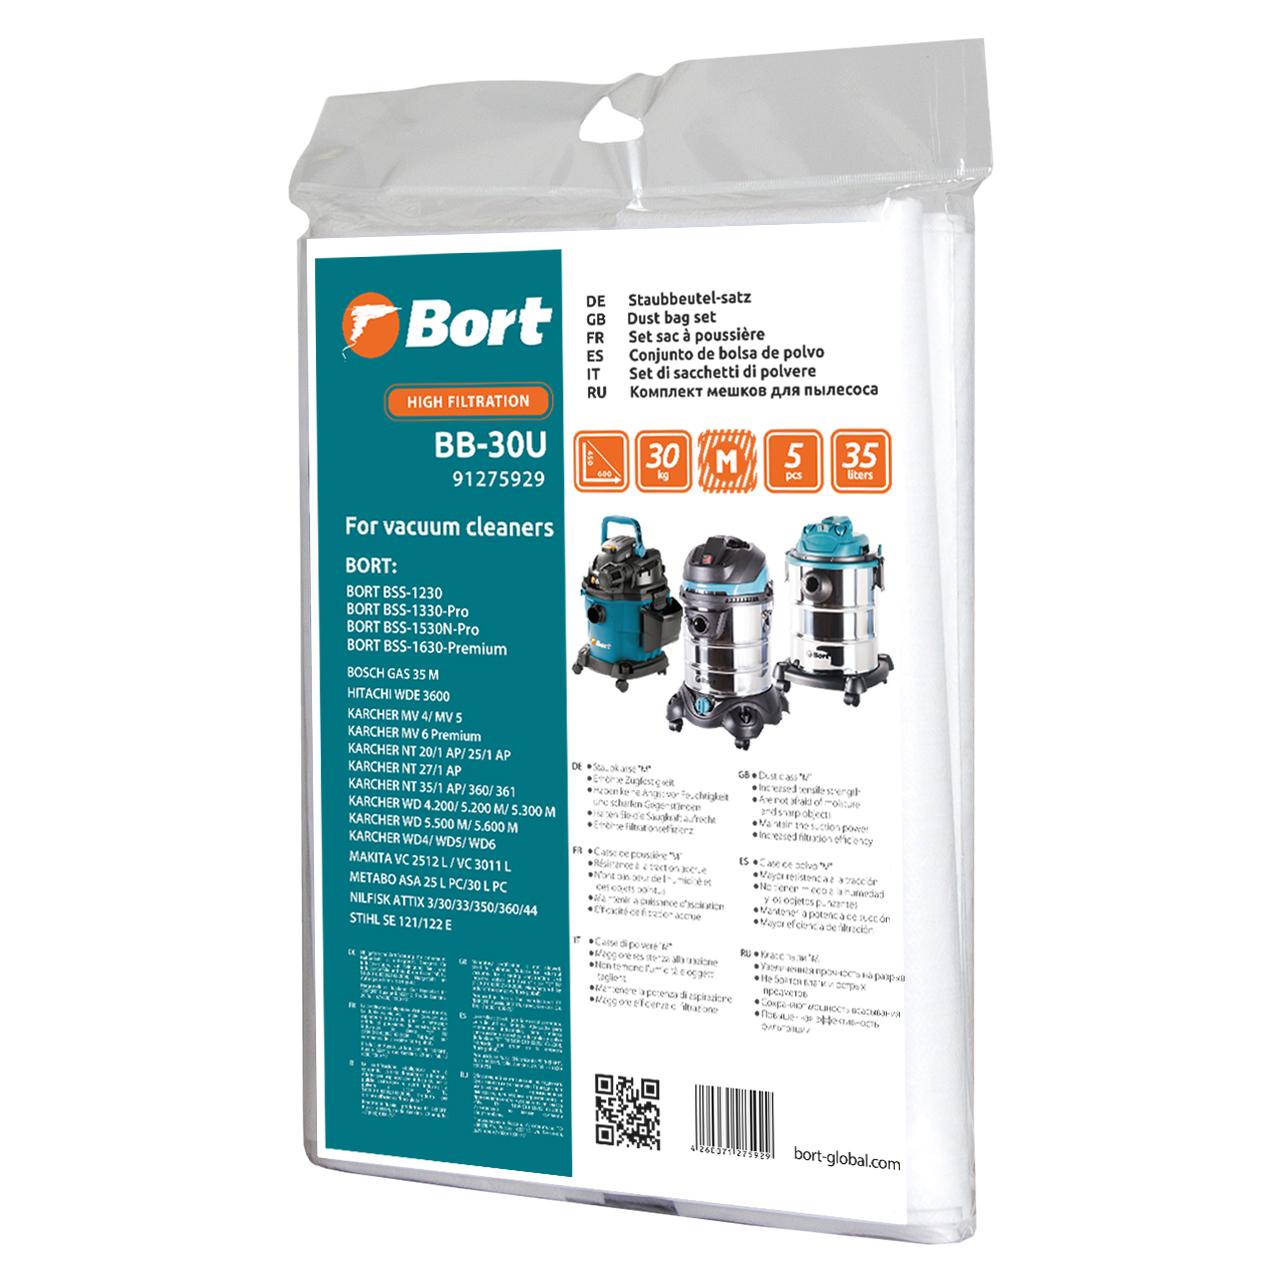 Dust bag set BORT BB-30U